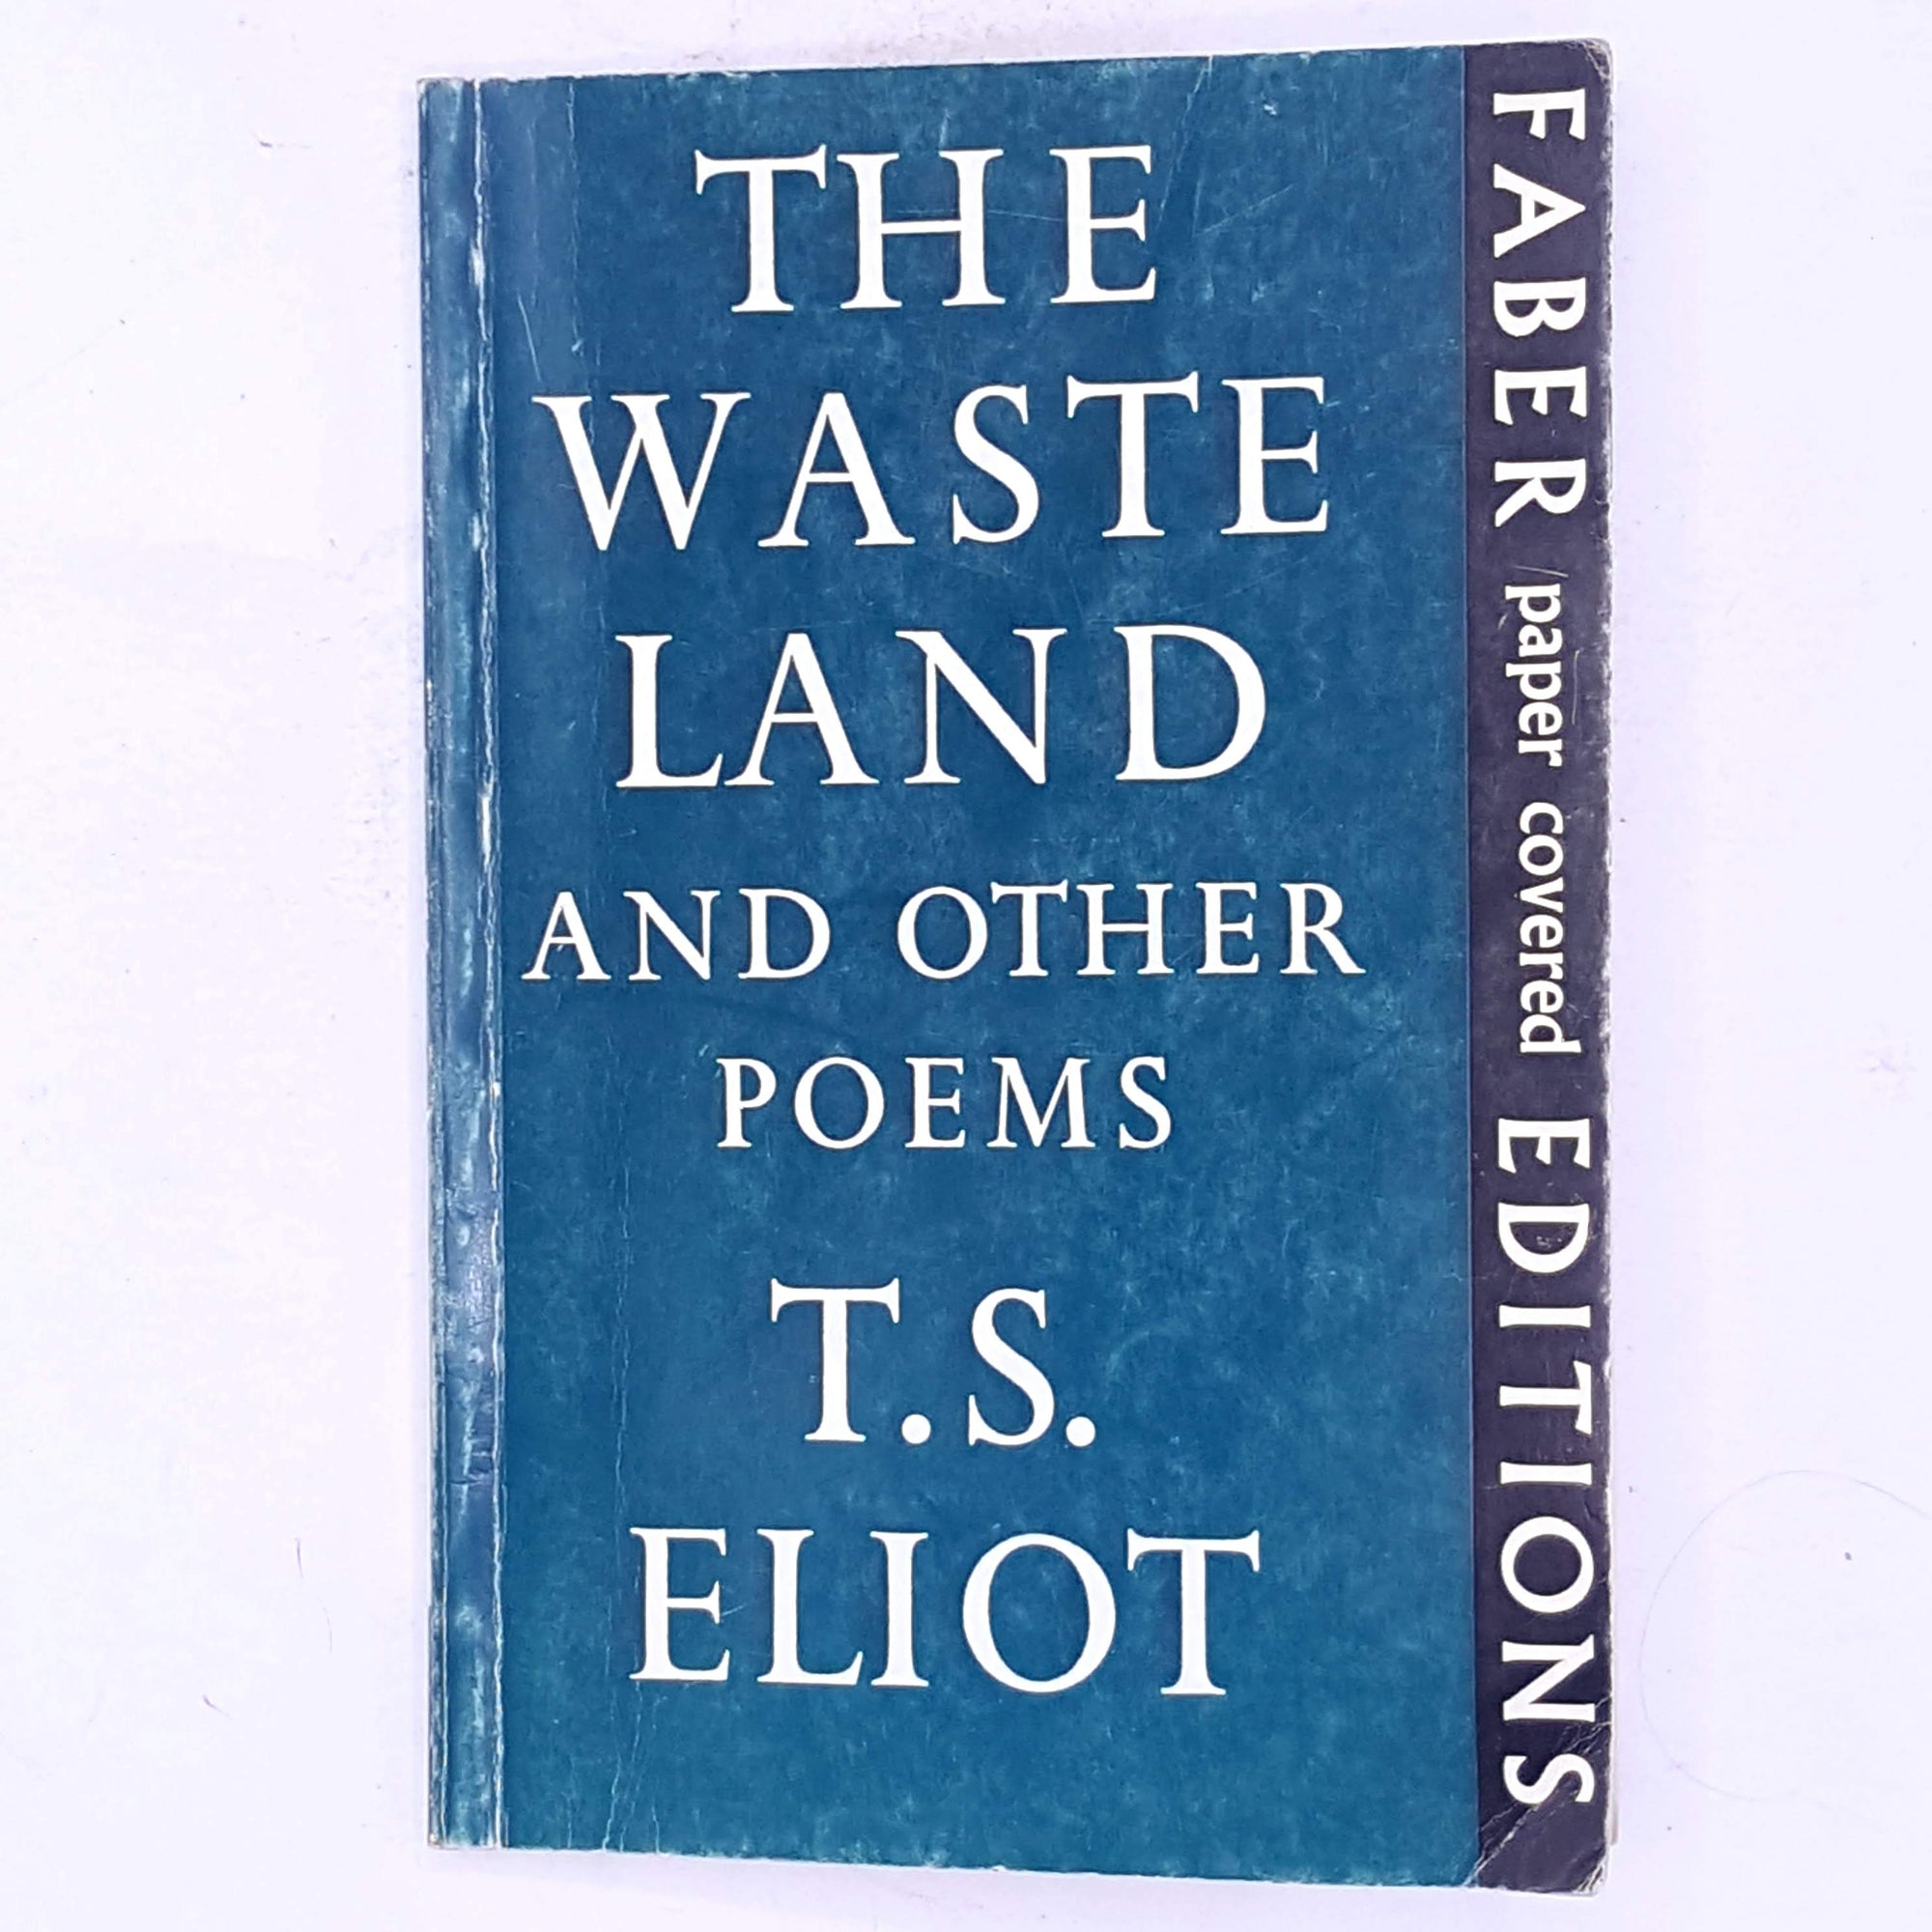 thrift-decorative-the-waste-land-and-other-poems-country-house-library-patterned-old-classic-antique-poets-poetry-poet-books-T.S.-Eliot-vintage-